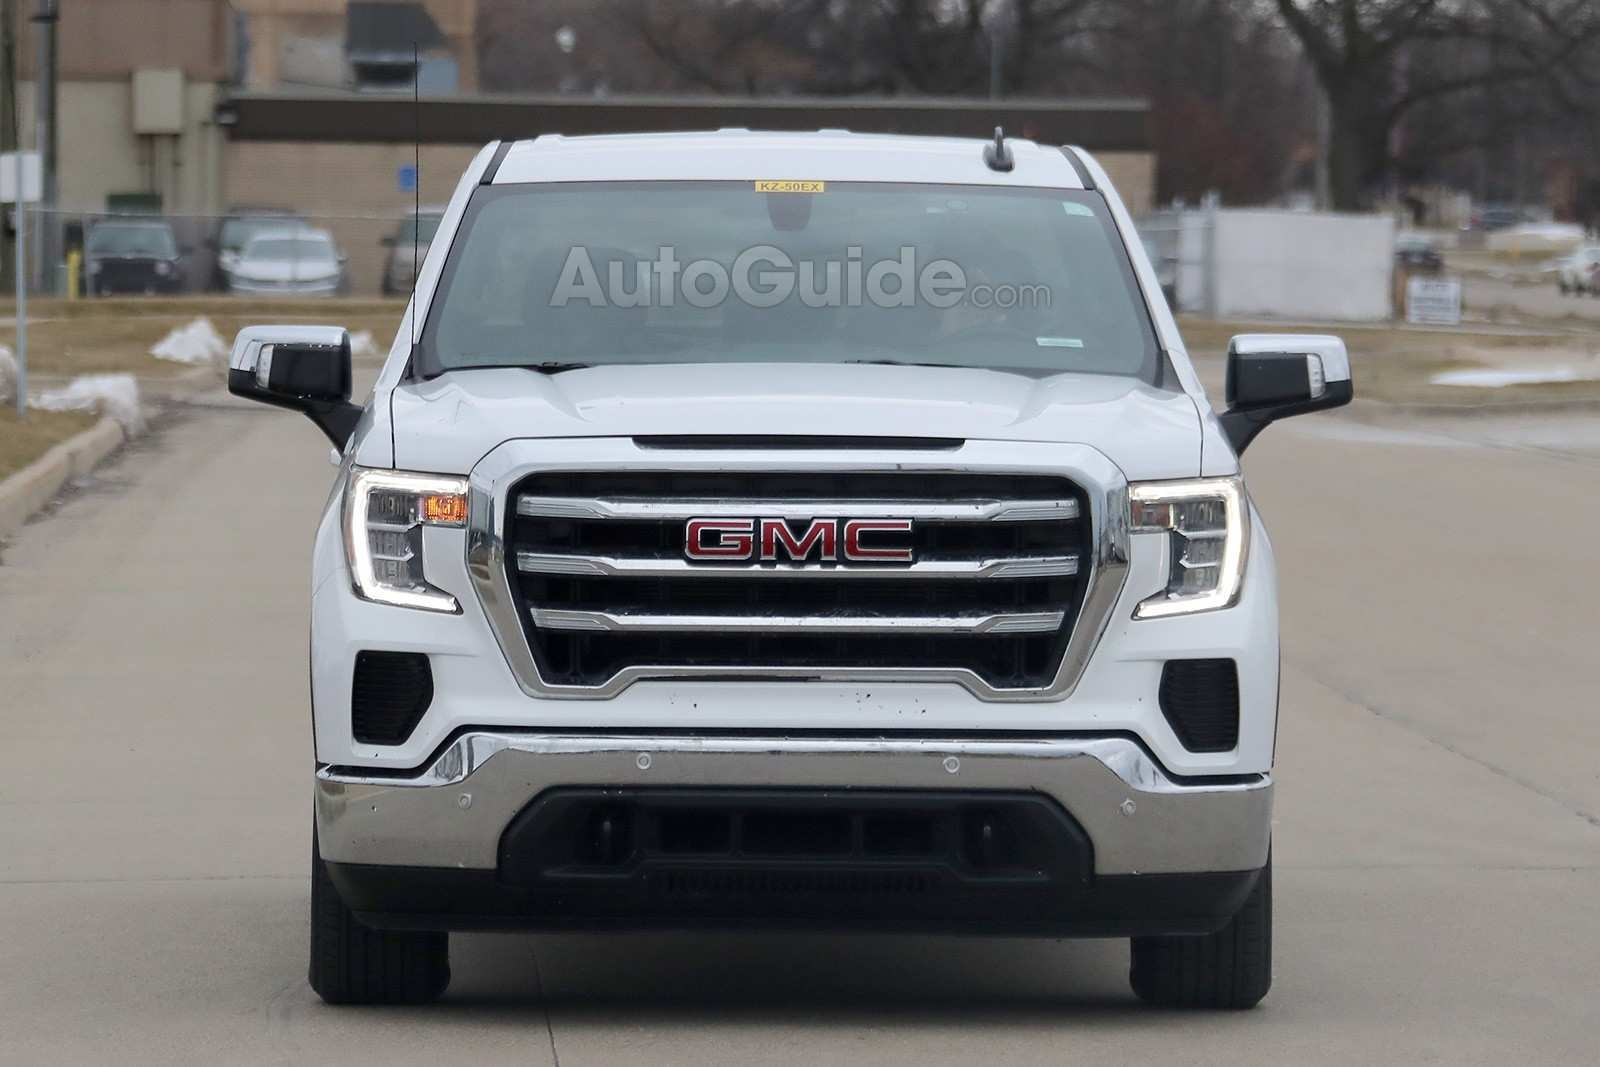 45 All New Best Gmc Denali 2019 Interior Exterior And Review Exterior by Best Gmc Denali 2019 Interior Exterior And Review